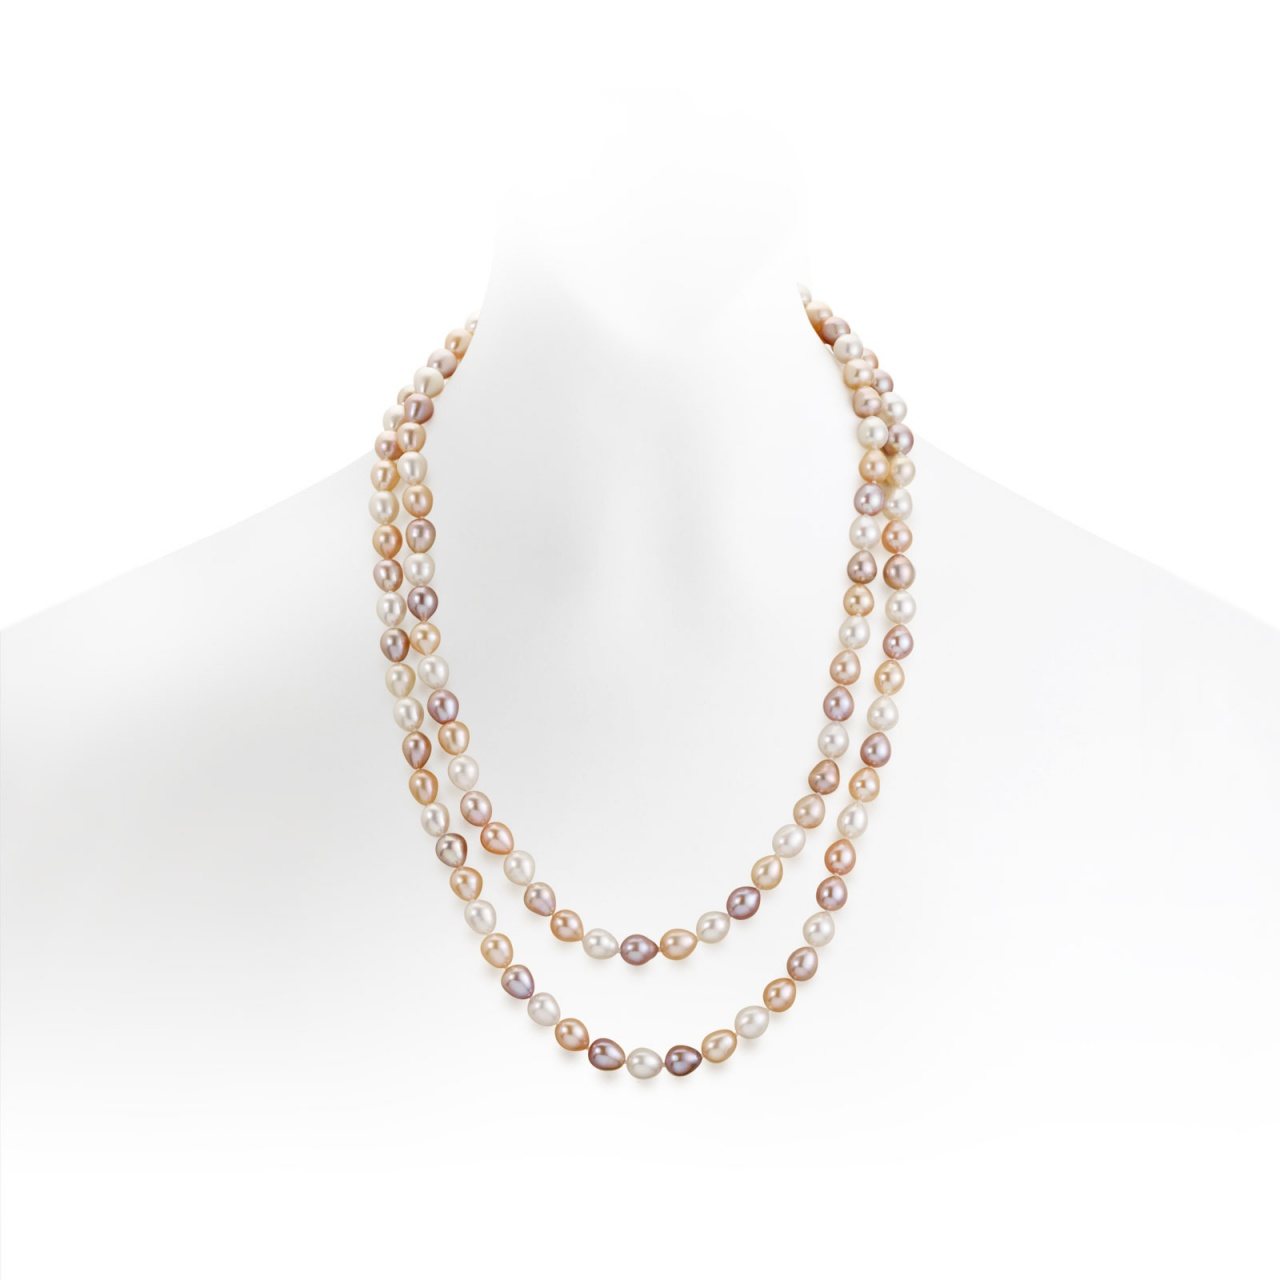 Long Multi-coloured Oval Freshwater Pearl Necklace with Silver-FSMOSS0078-1